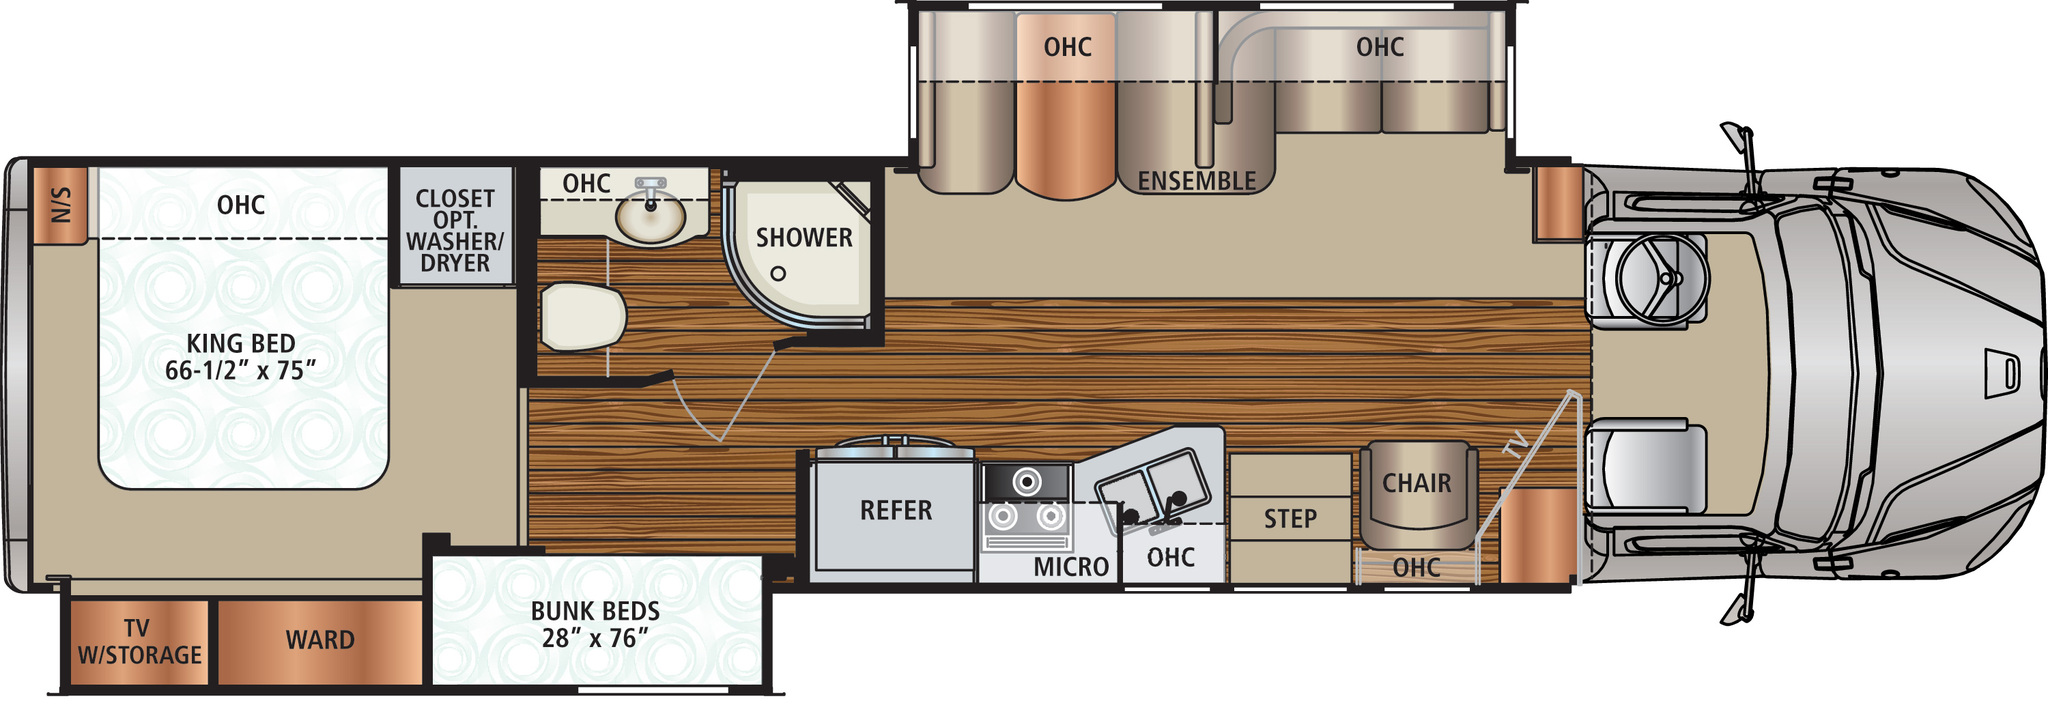 2014 Dynamax DX3 37BH Floor Plan